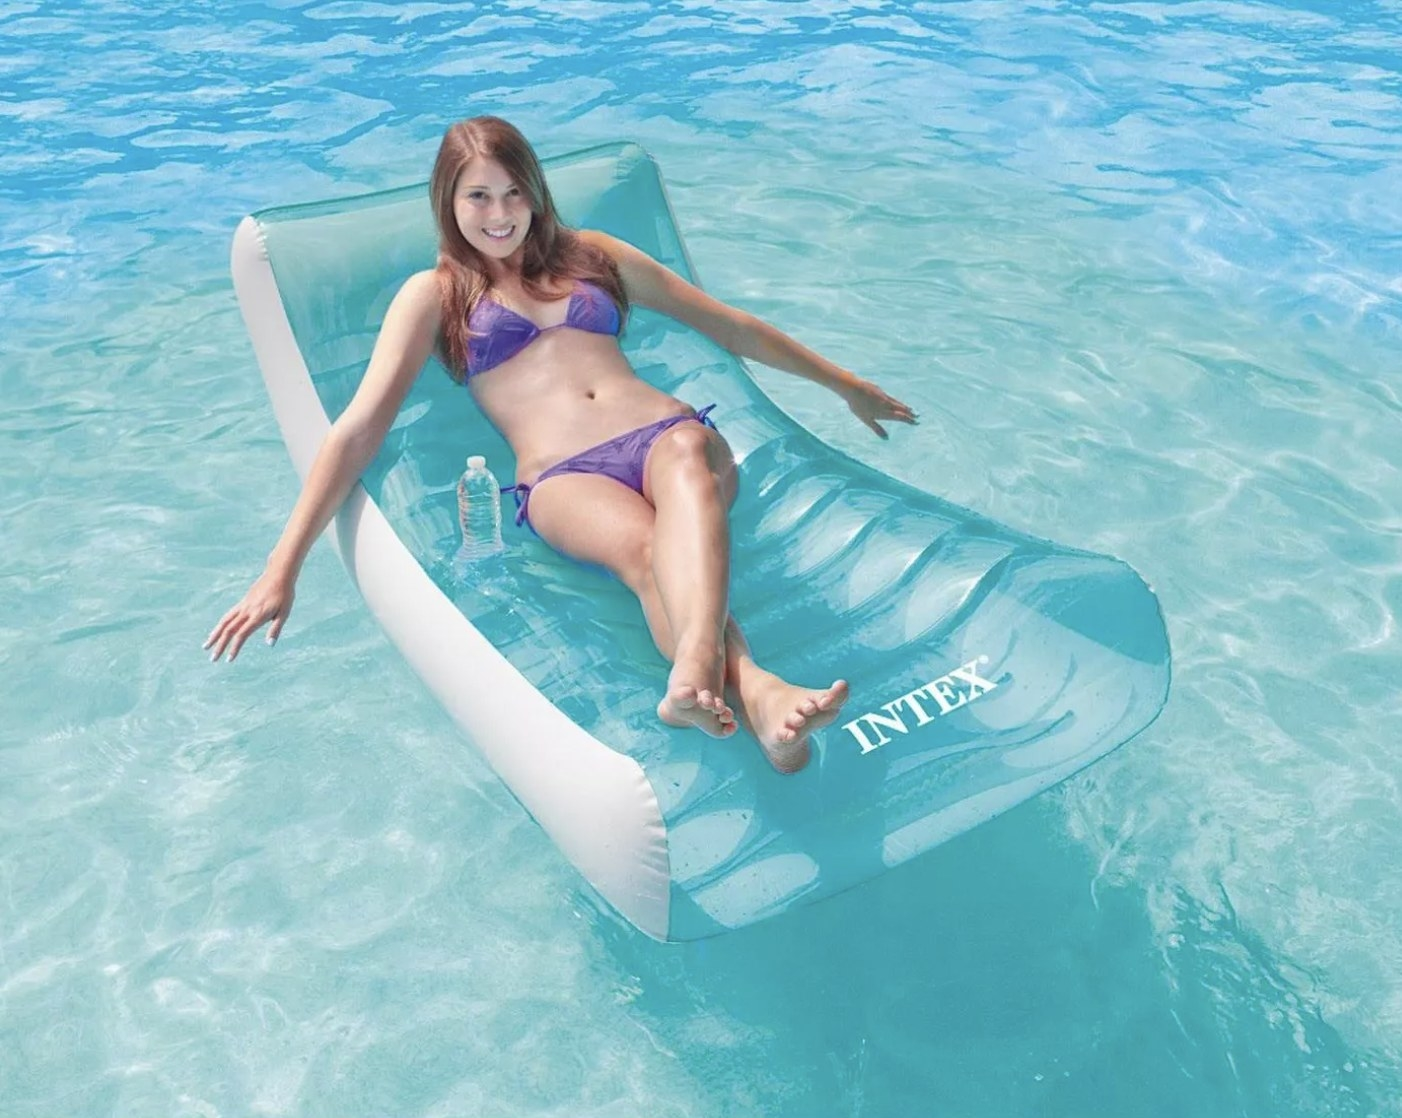 Model is lounging in a pool floating raft chair in a pool